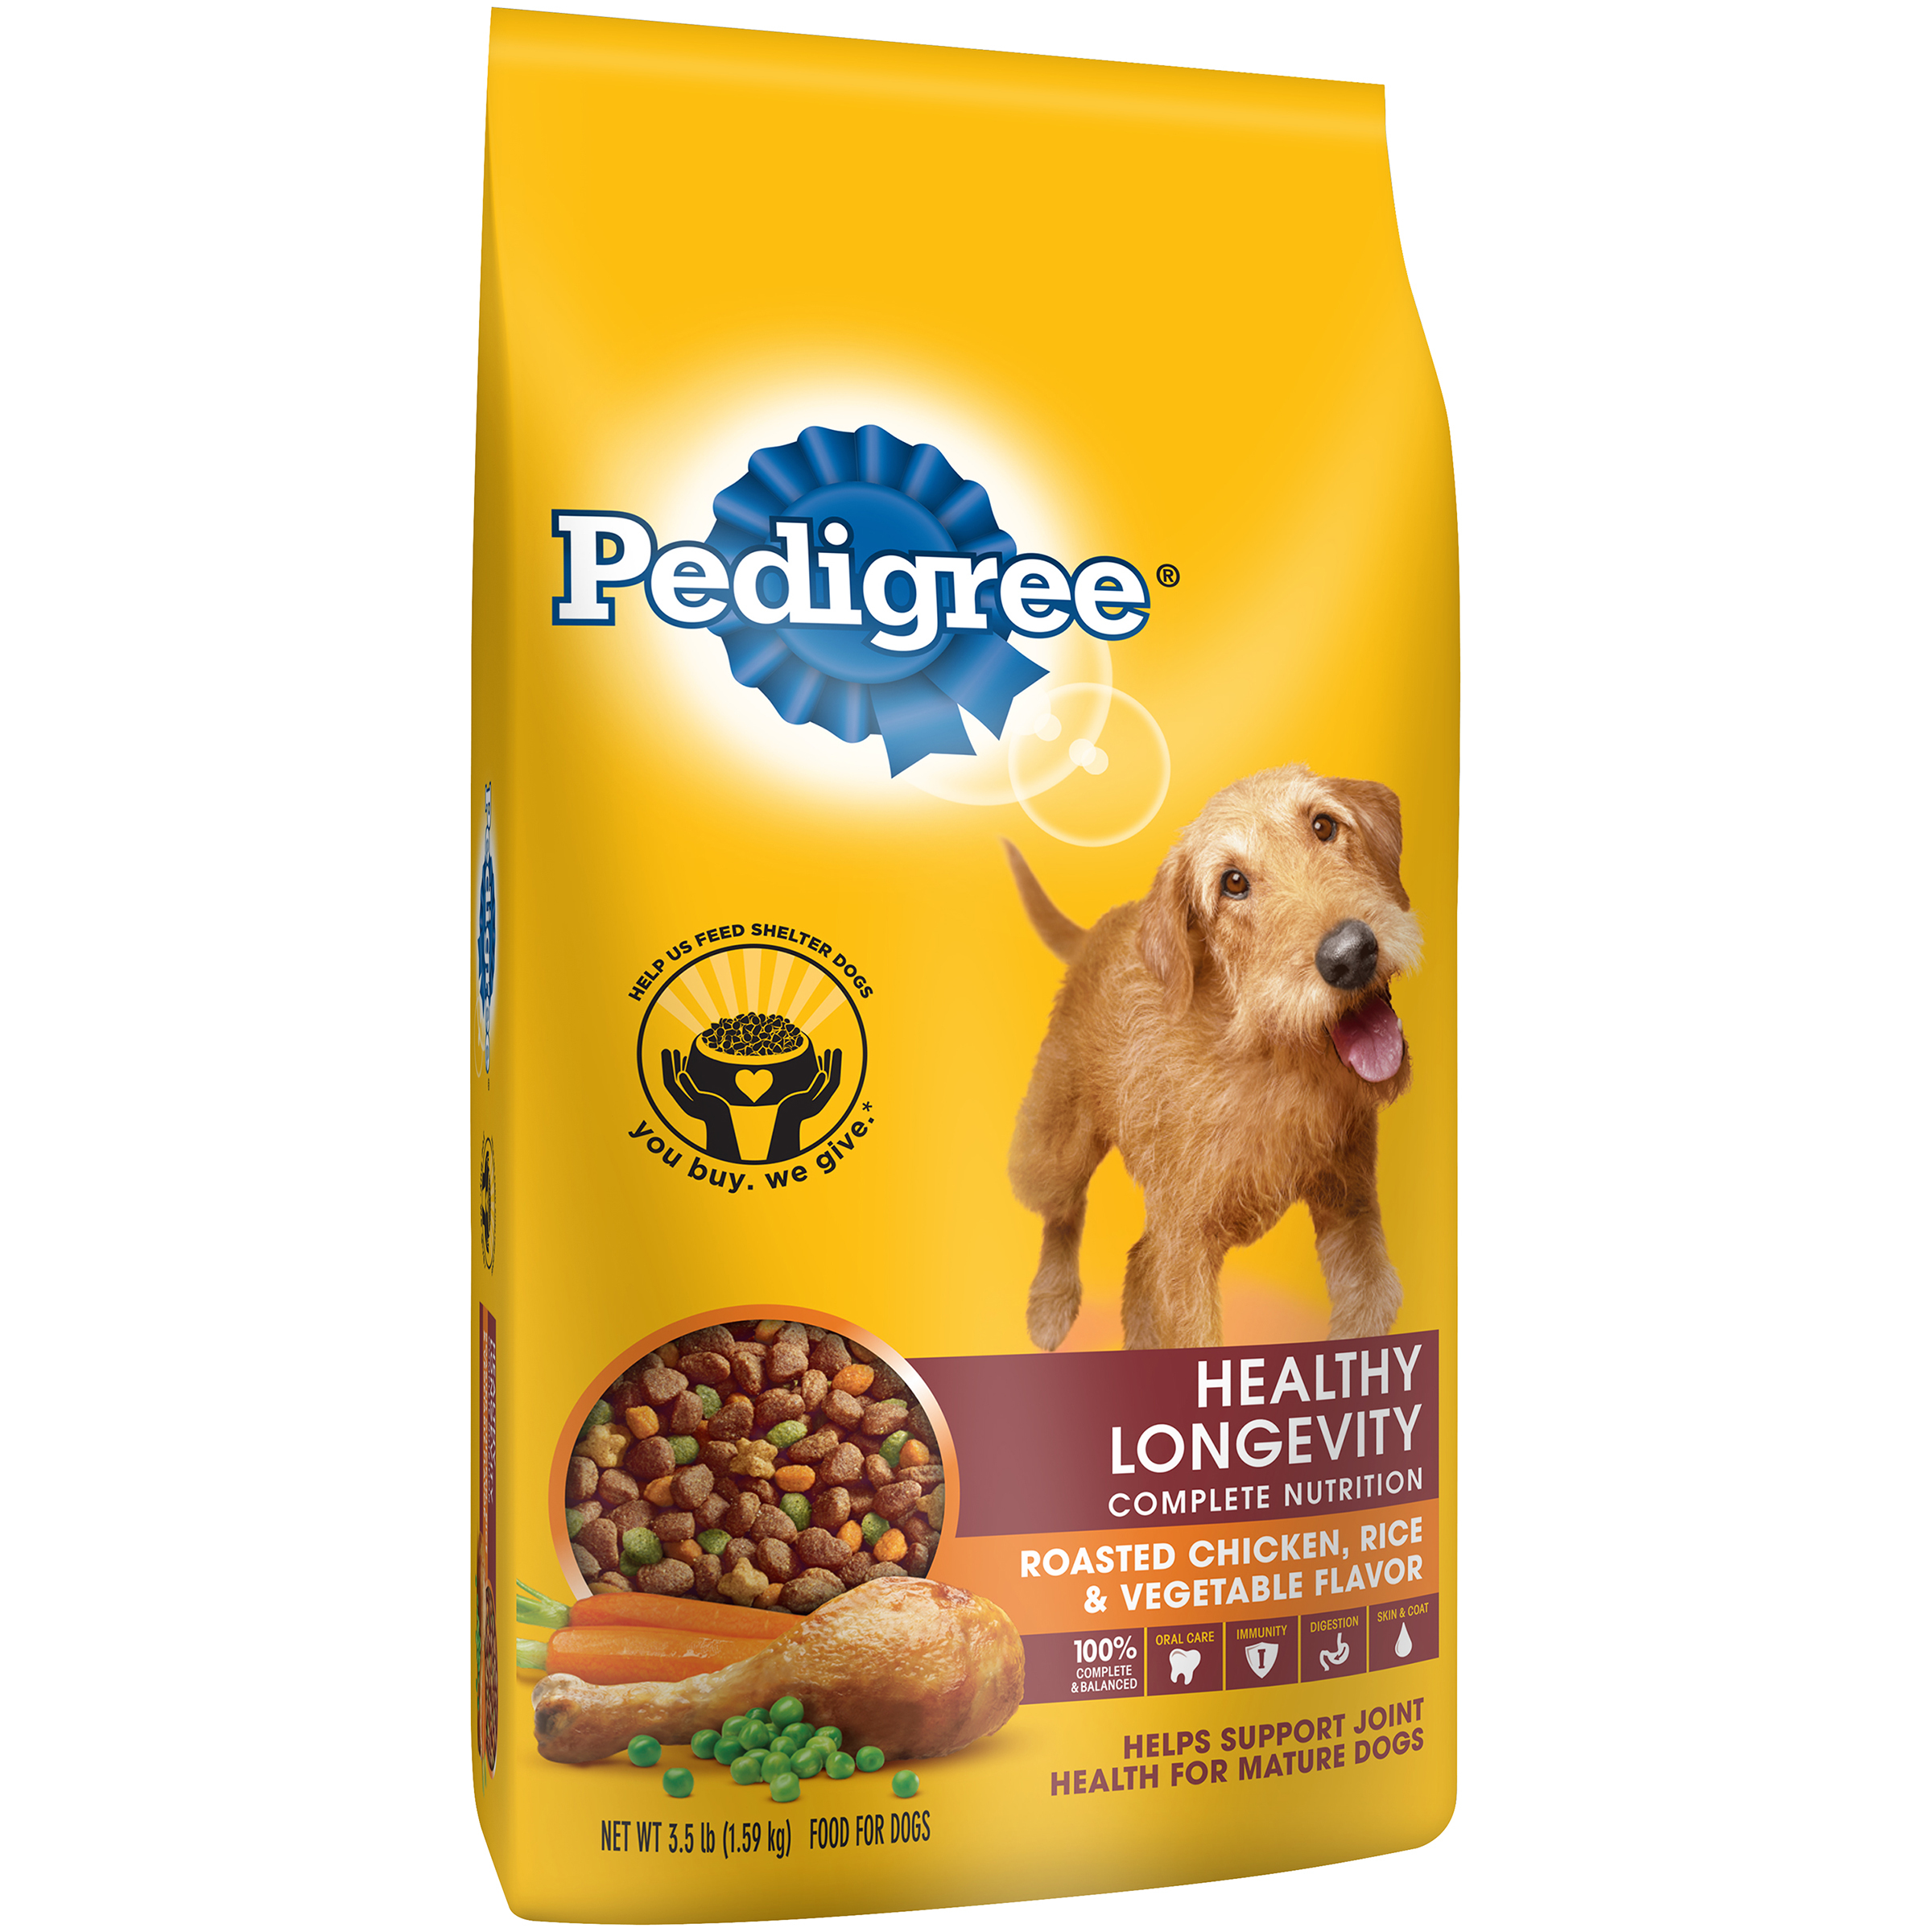 Pedigree® Healthy Longevity Complete Nutrition Roasted Chicken, Rice & Vegetable Flavor Dog Food